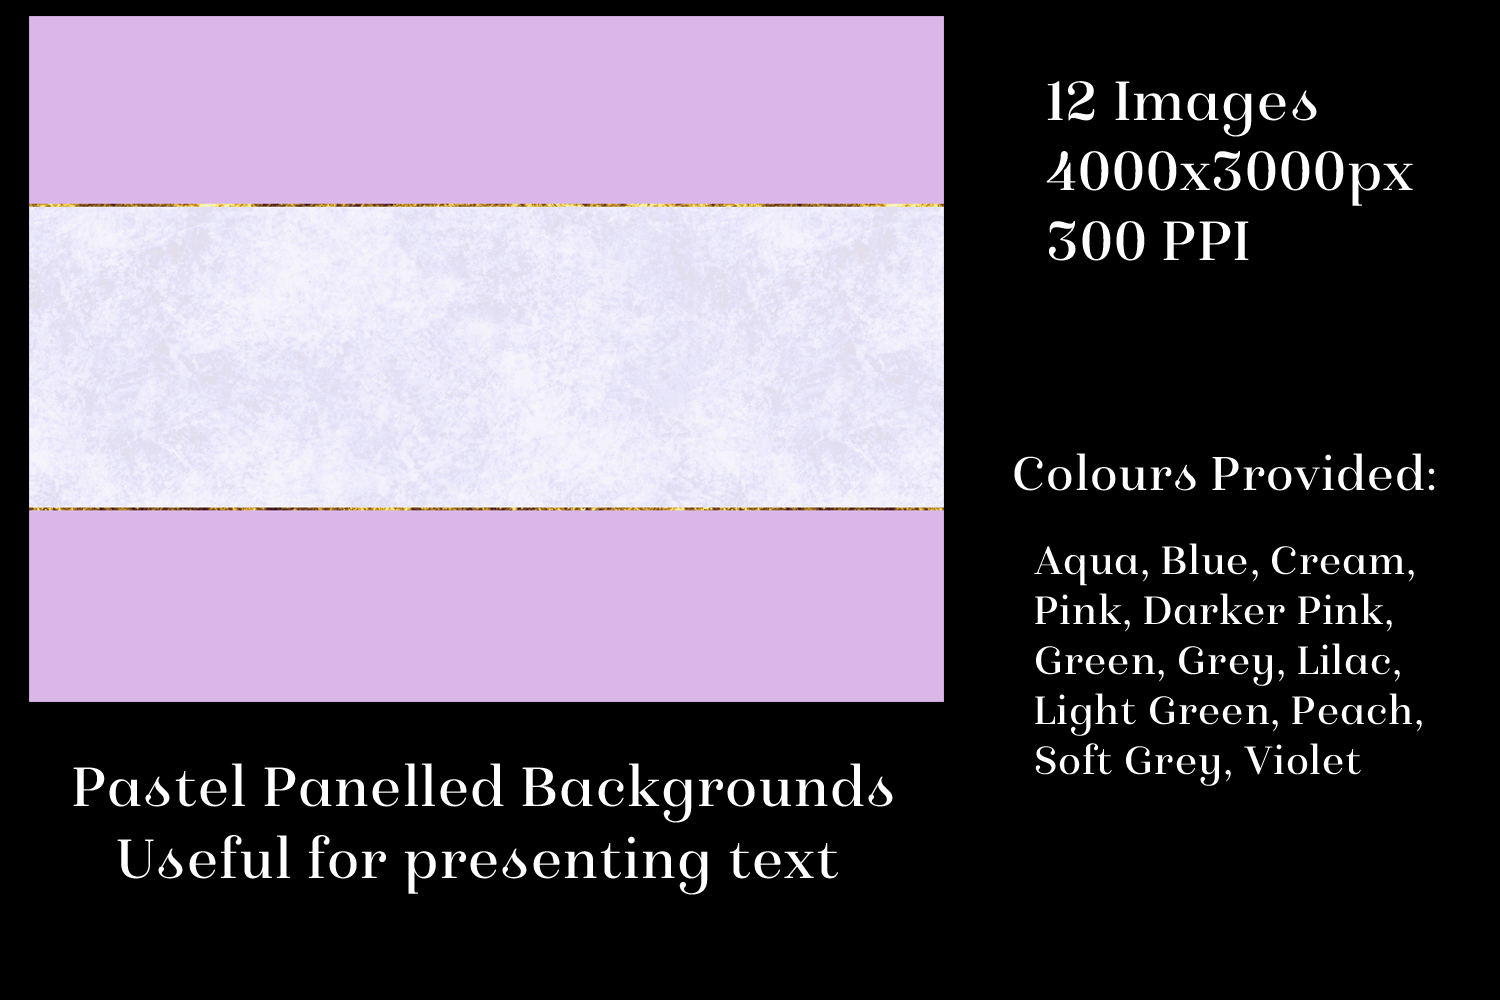 Pastel Panelled Backgrounds - 12 Image Textures Set example image 2